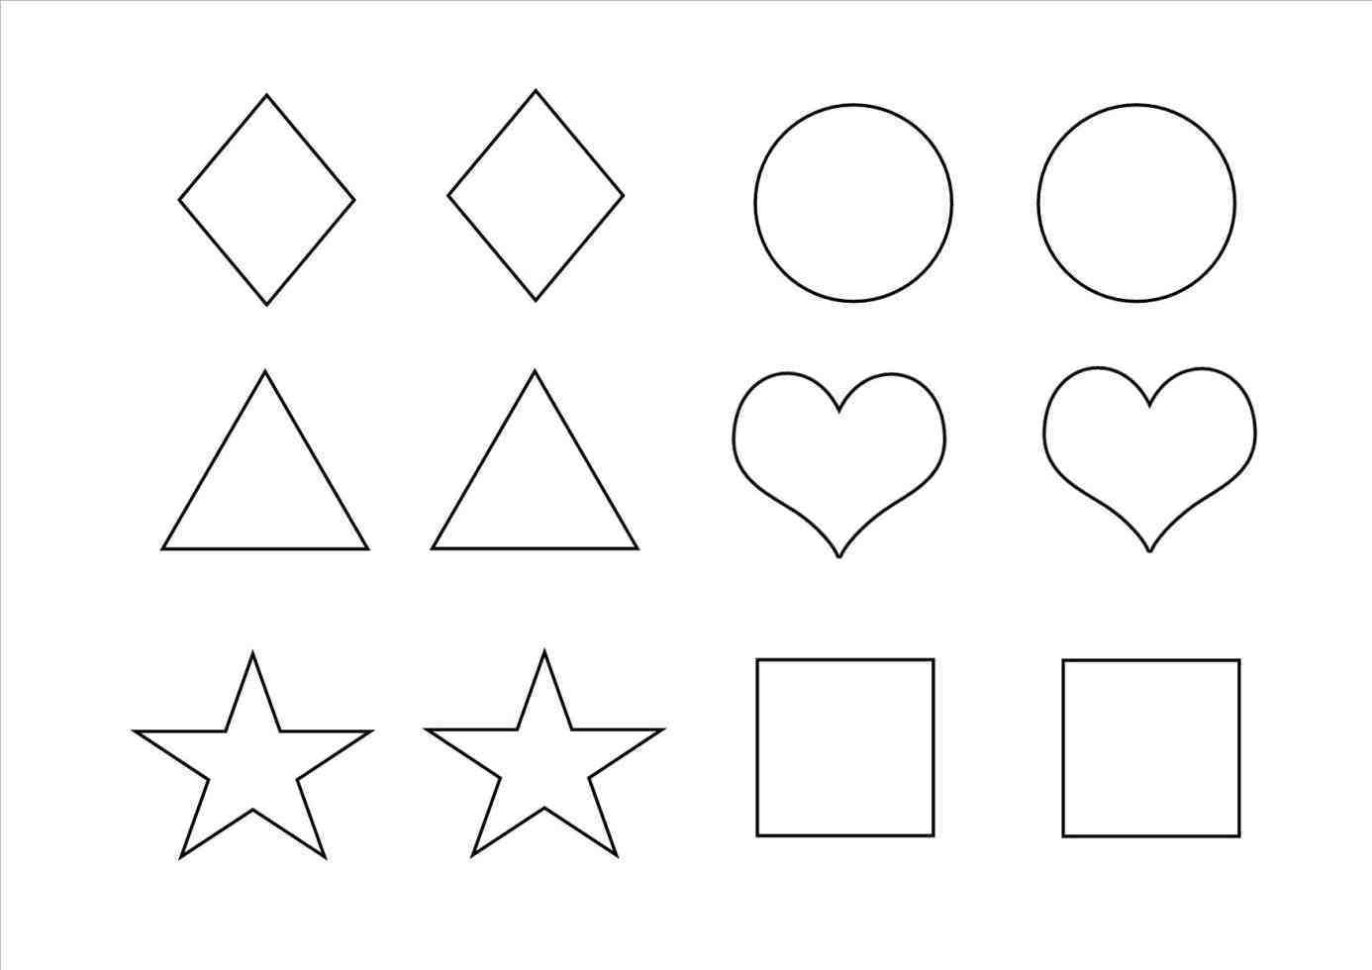 Direct Shapes Templates To Cut Out Free Printable Crammed Of Winter - Free Printable Shapes Templates